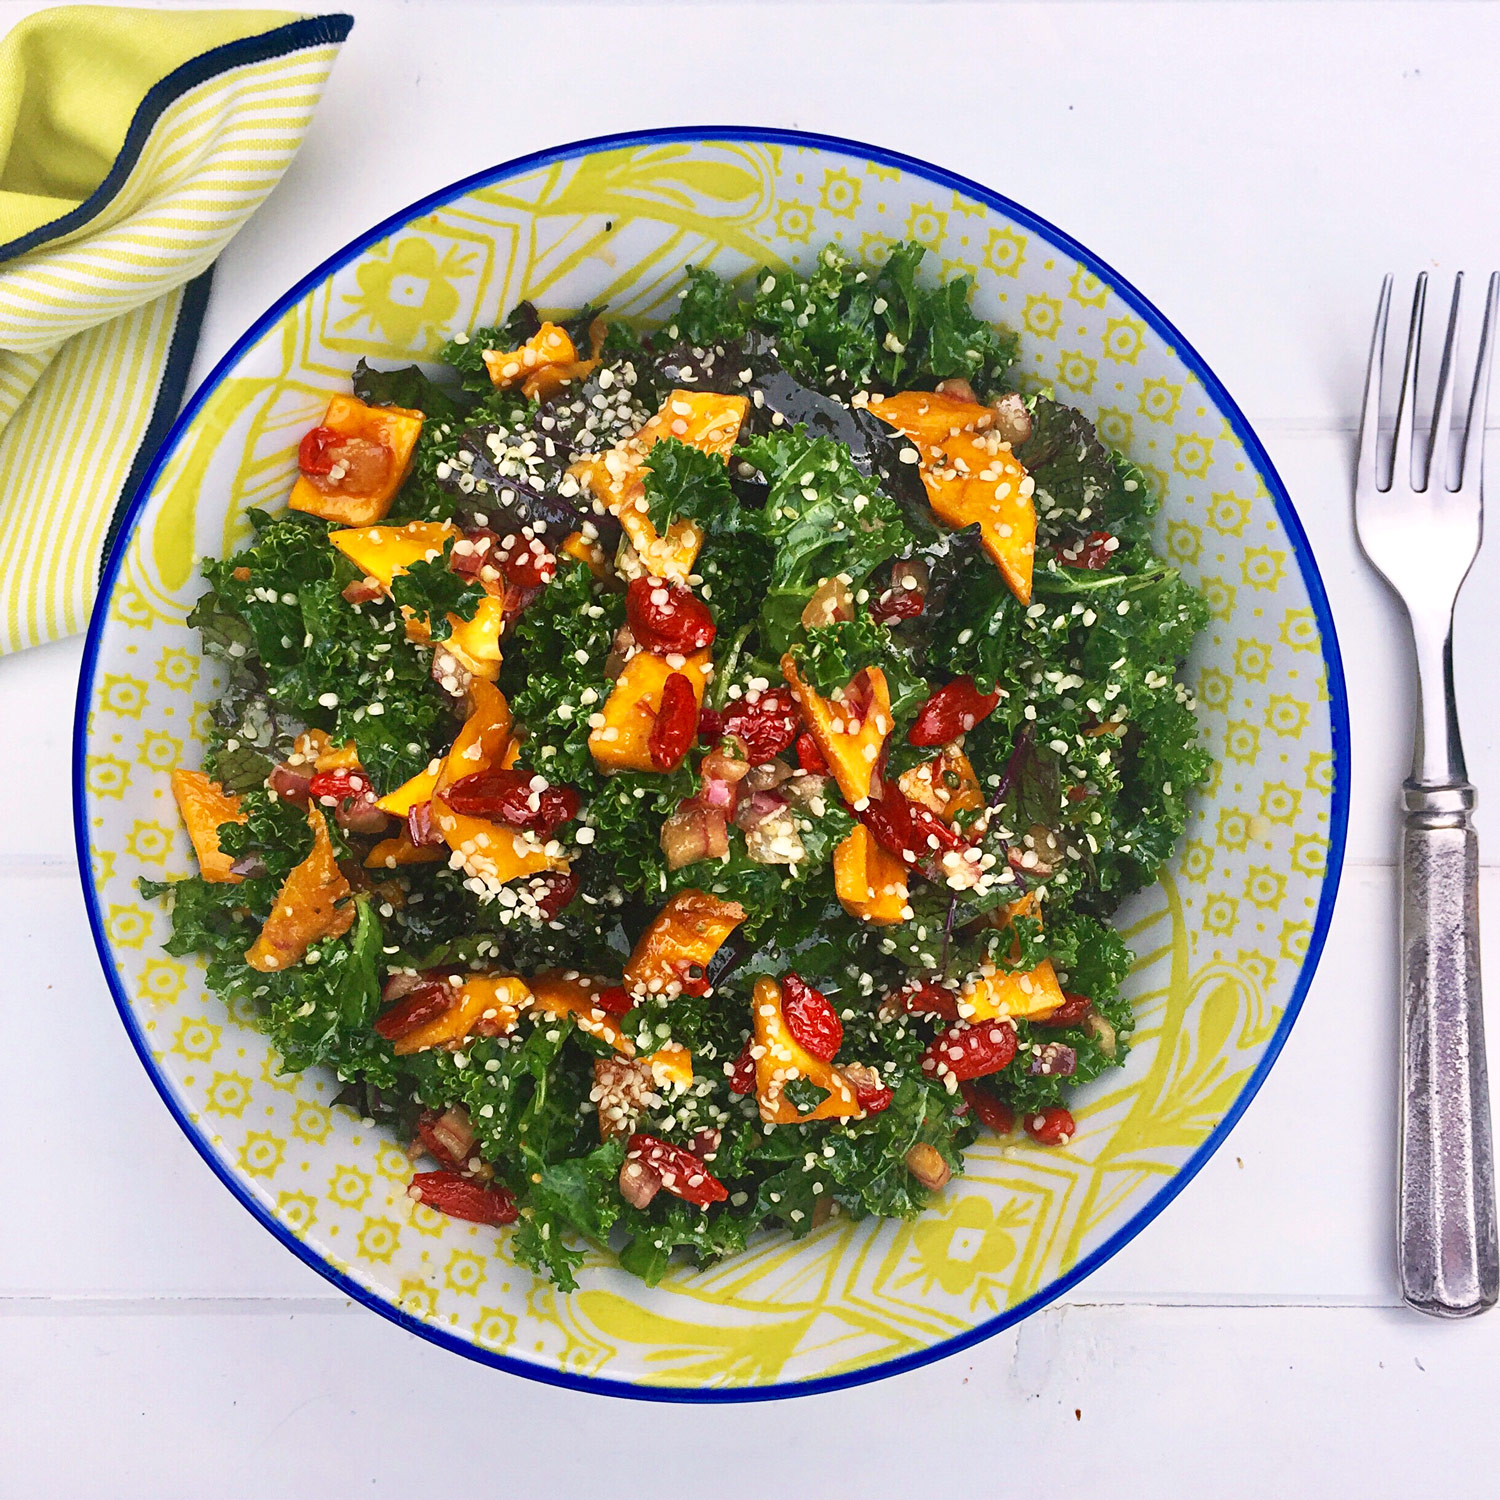 Mary and Sara - Tangy Kale Salad